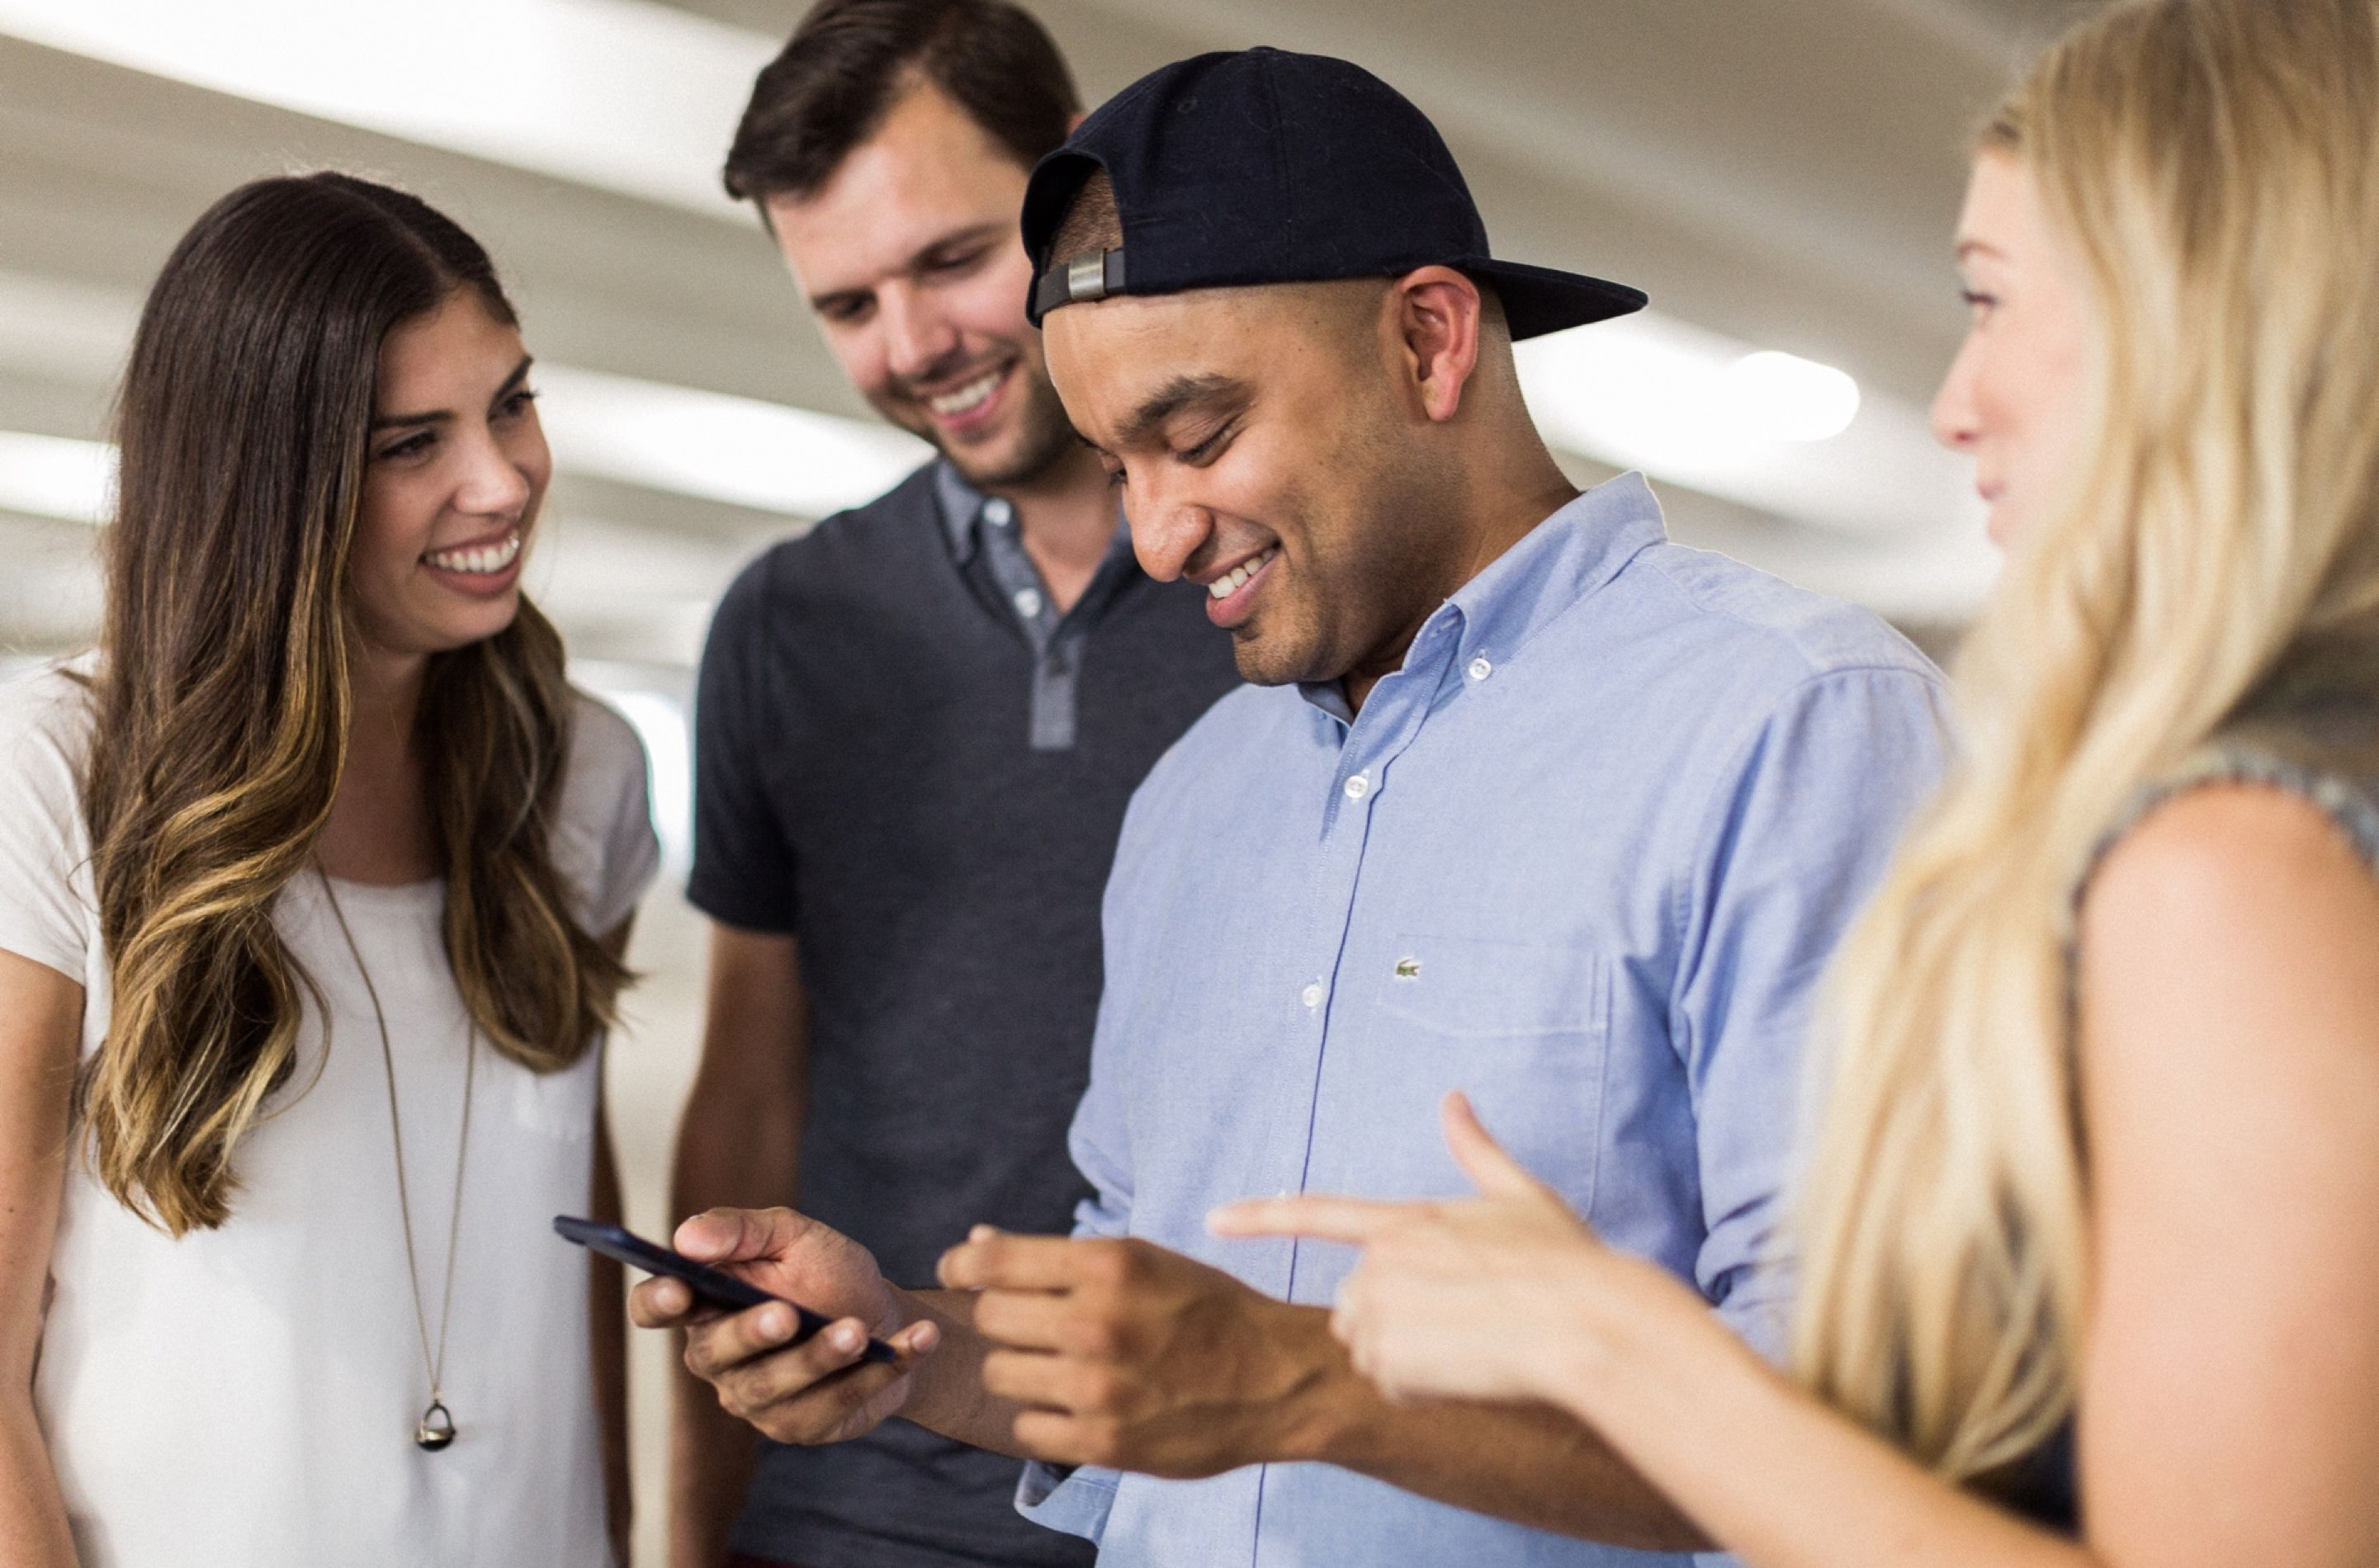 A group of 4 smiling people look on as a man scrolls on a smart phone